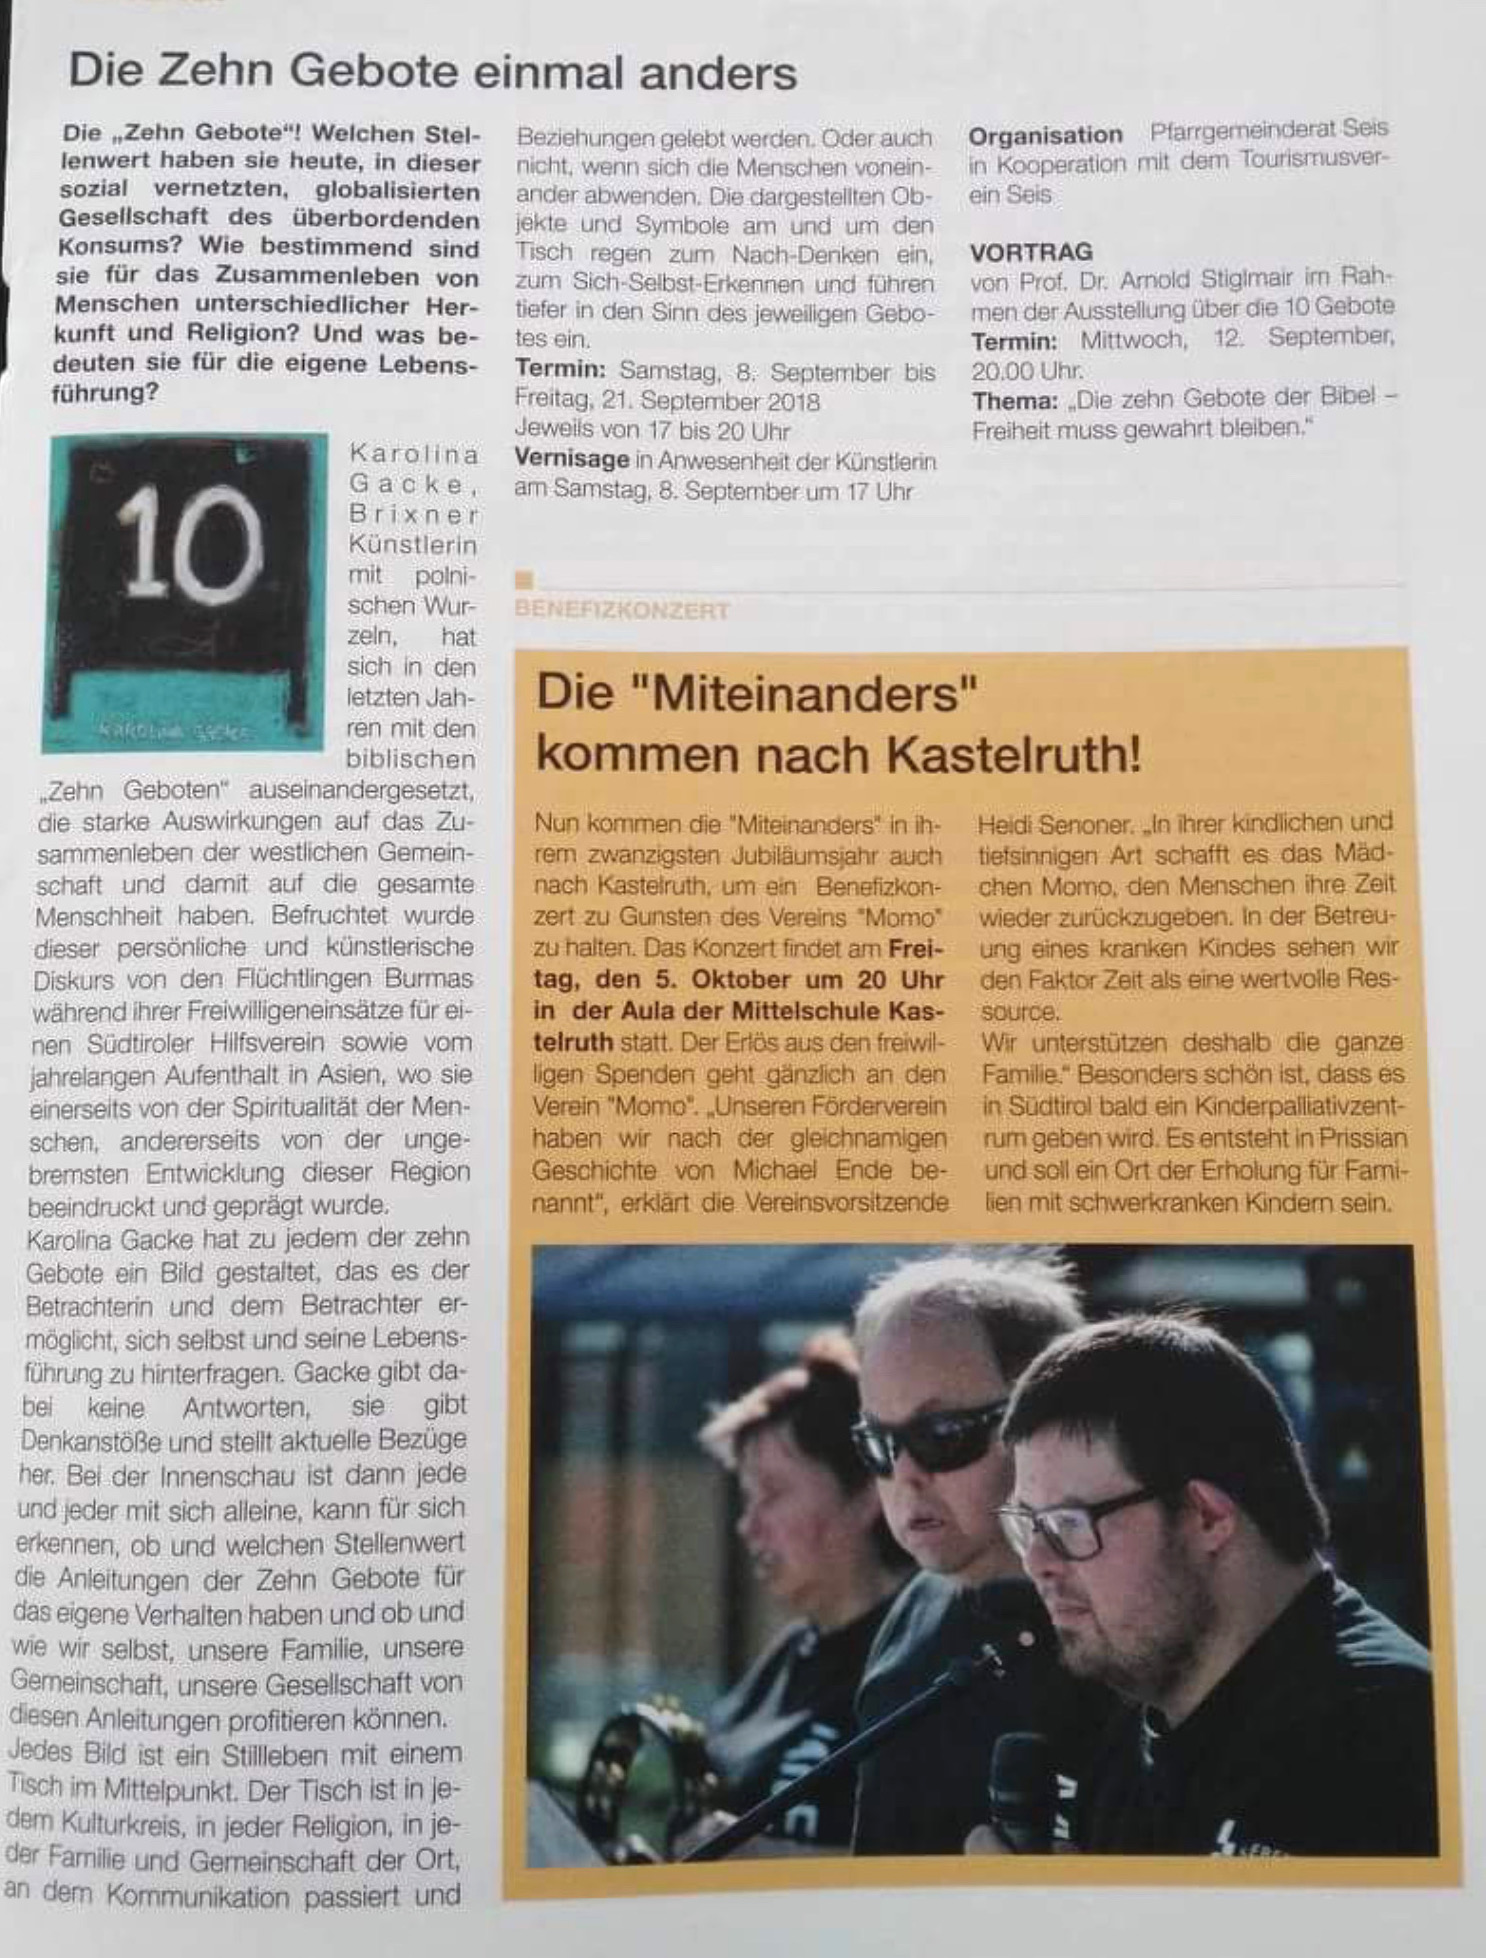 Radio Wohnzimmer Sender Bozen Press Review The Art Of Karolina Gacke